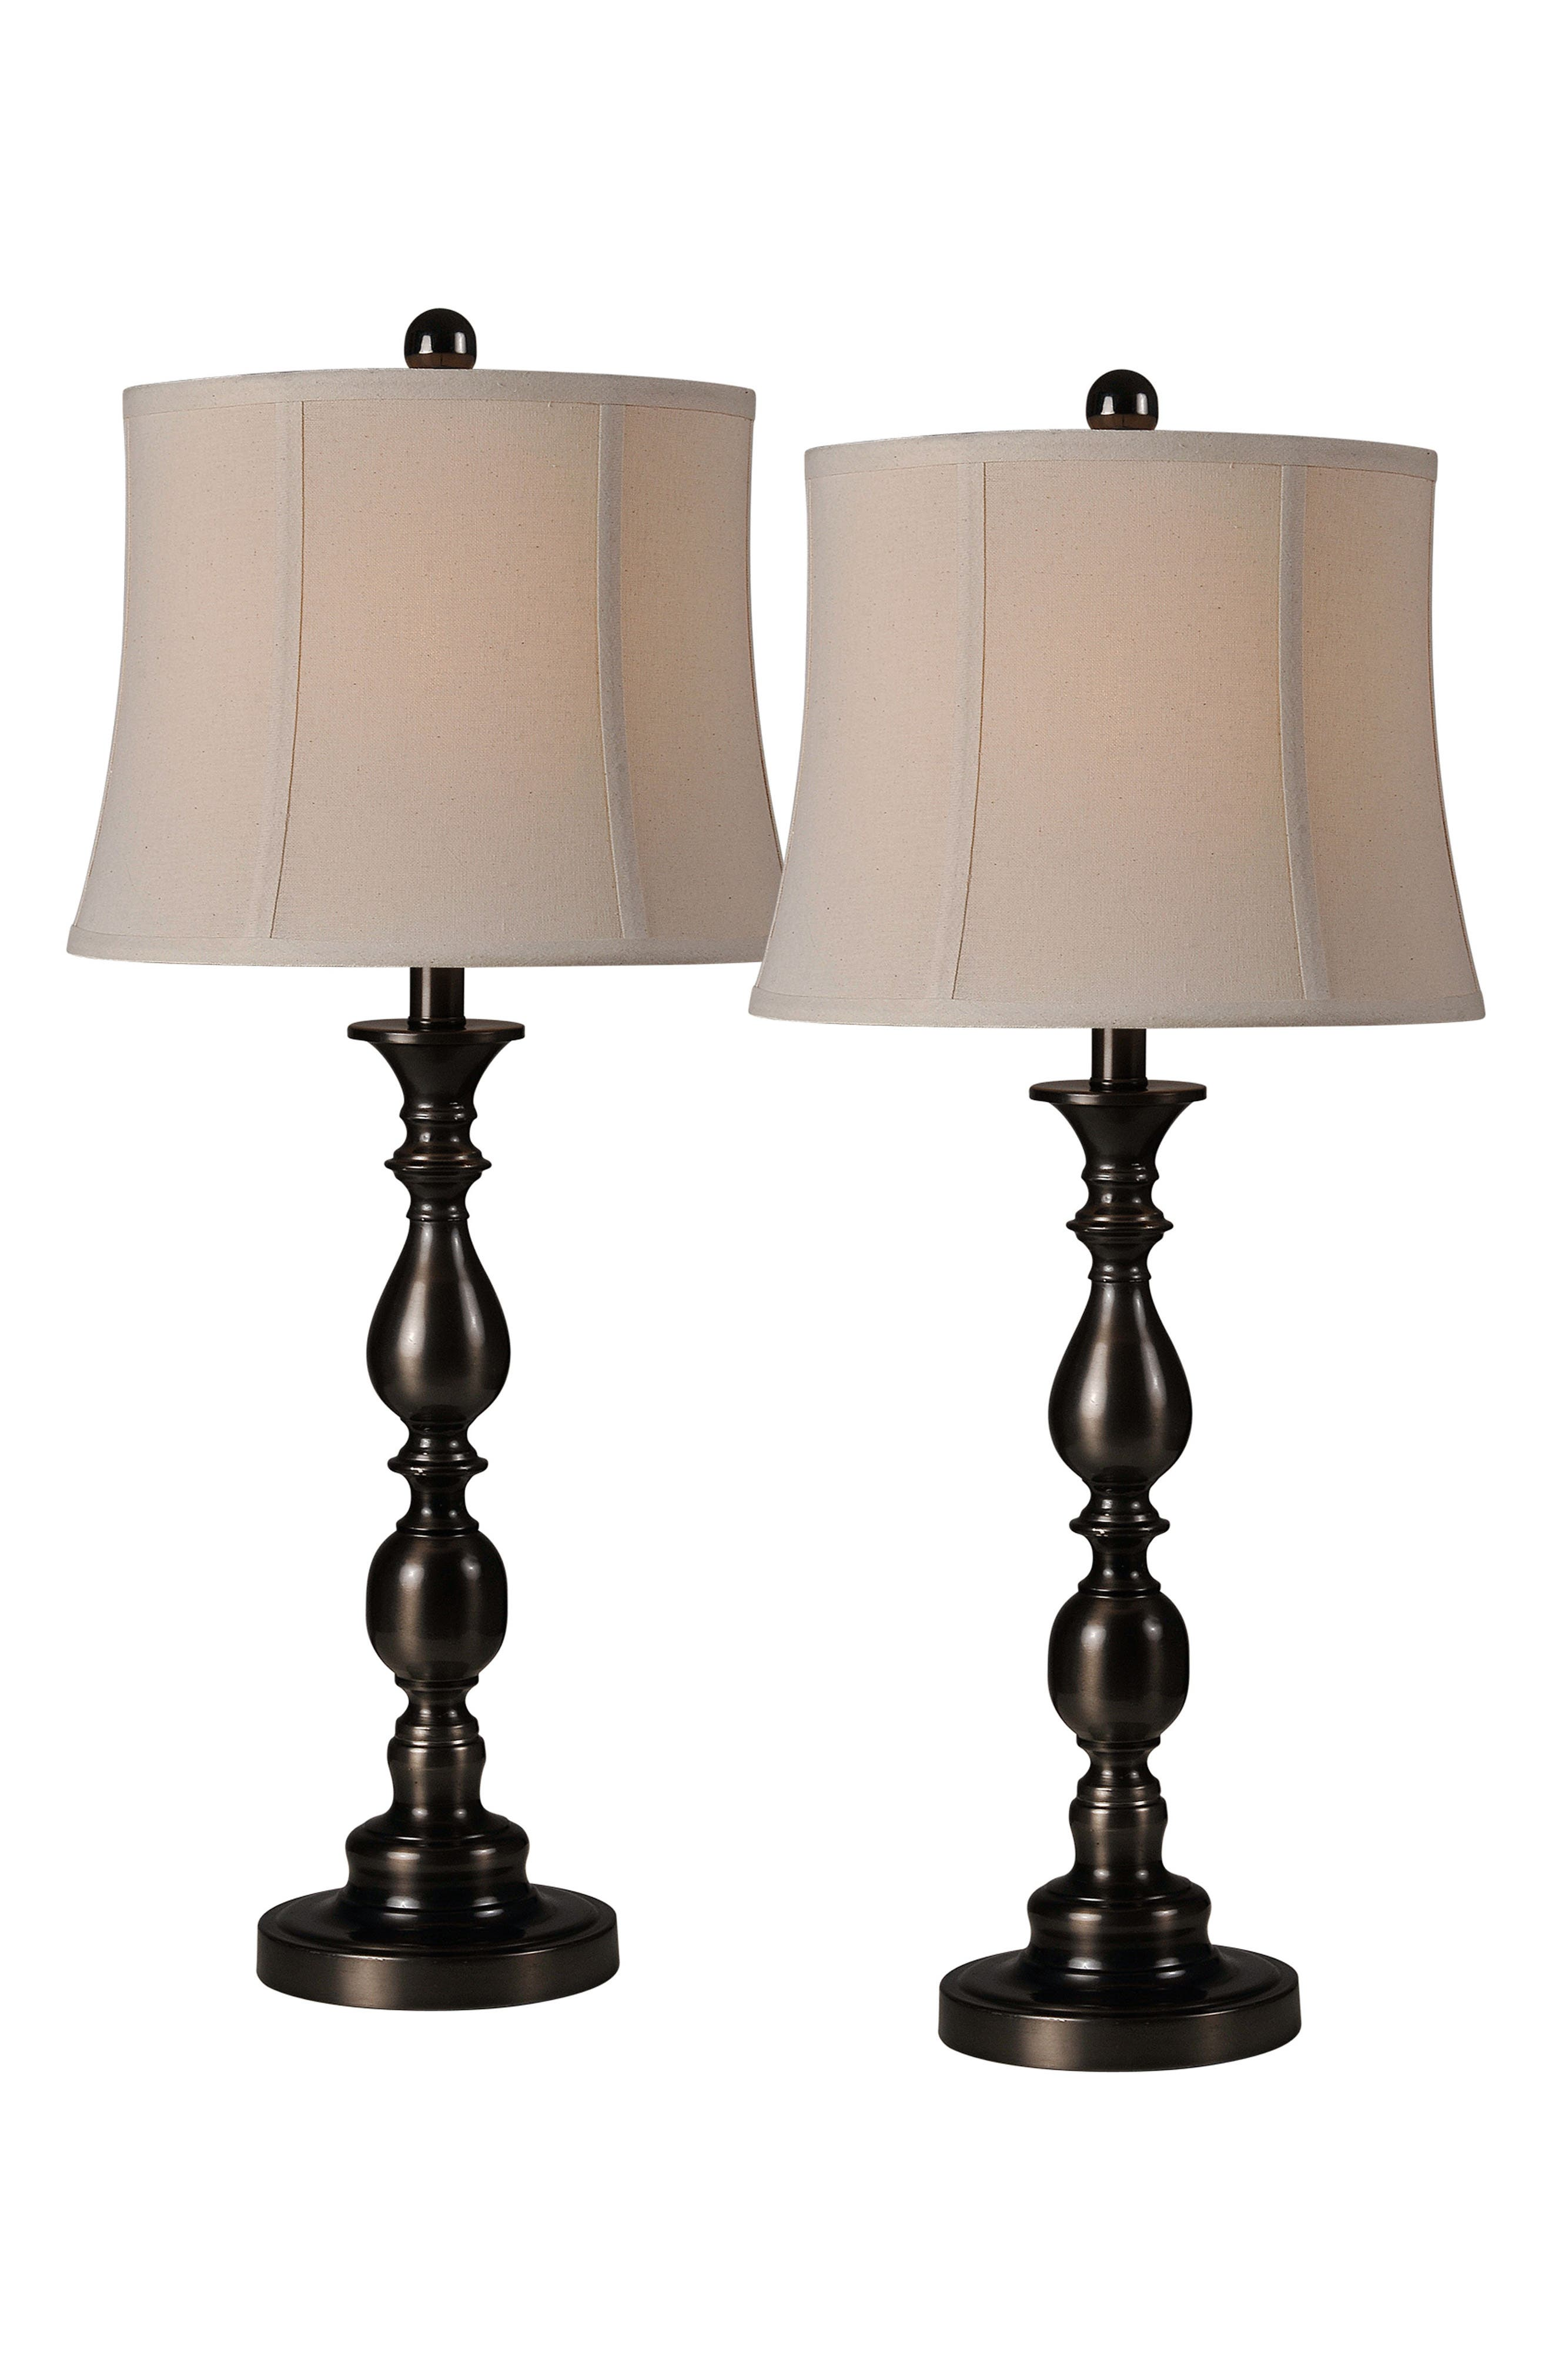 Scala Set of 2 Table Lamps,                             Main thumbnail 1, color,                             OIL RUBBED BRONZE